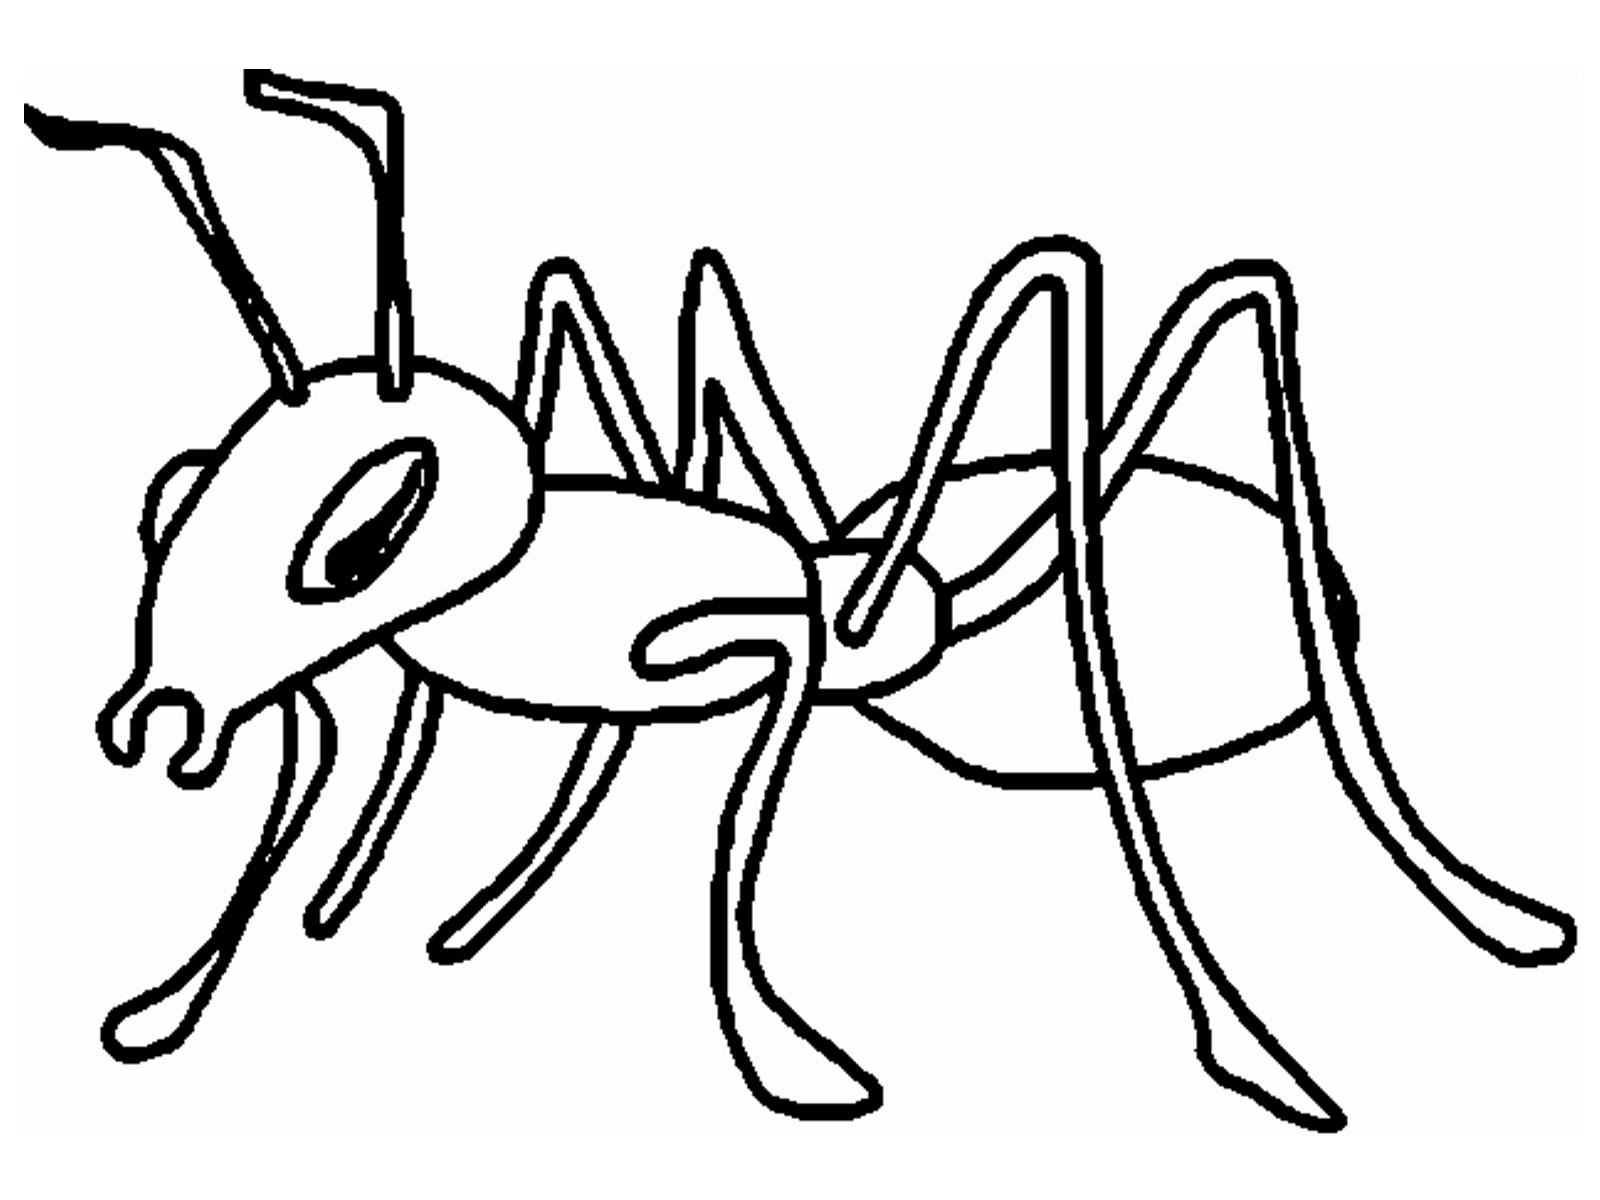 Drawn ant #13